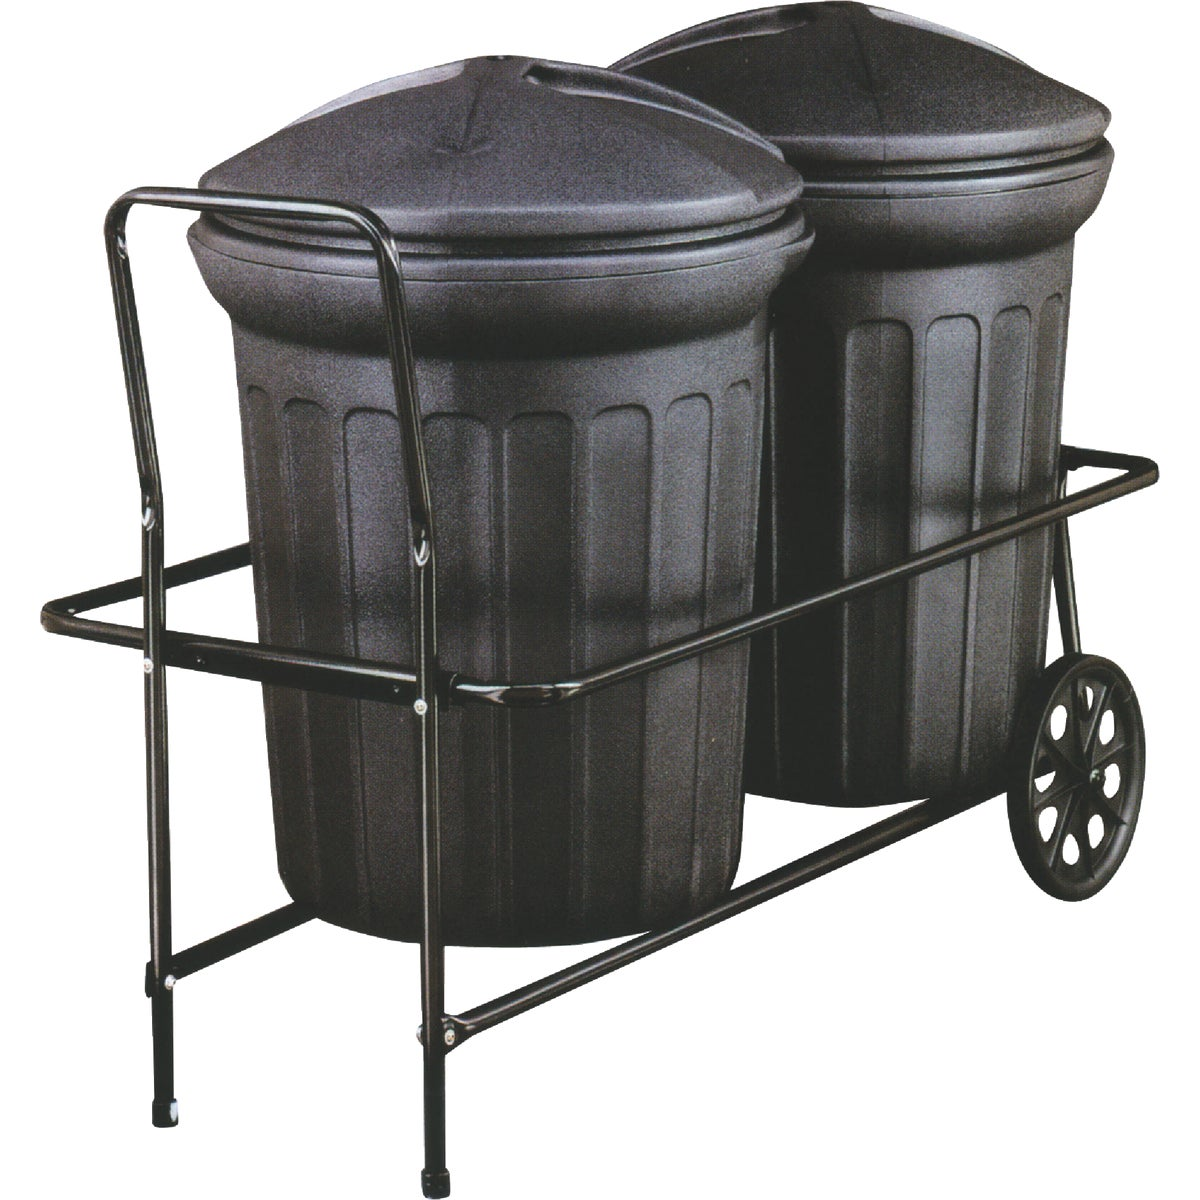 TRASH CAN HAND CART - NTC501 by Behrens Mfg